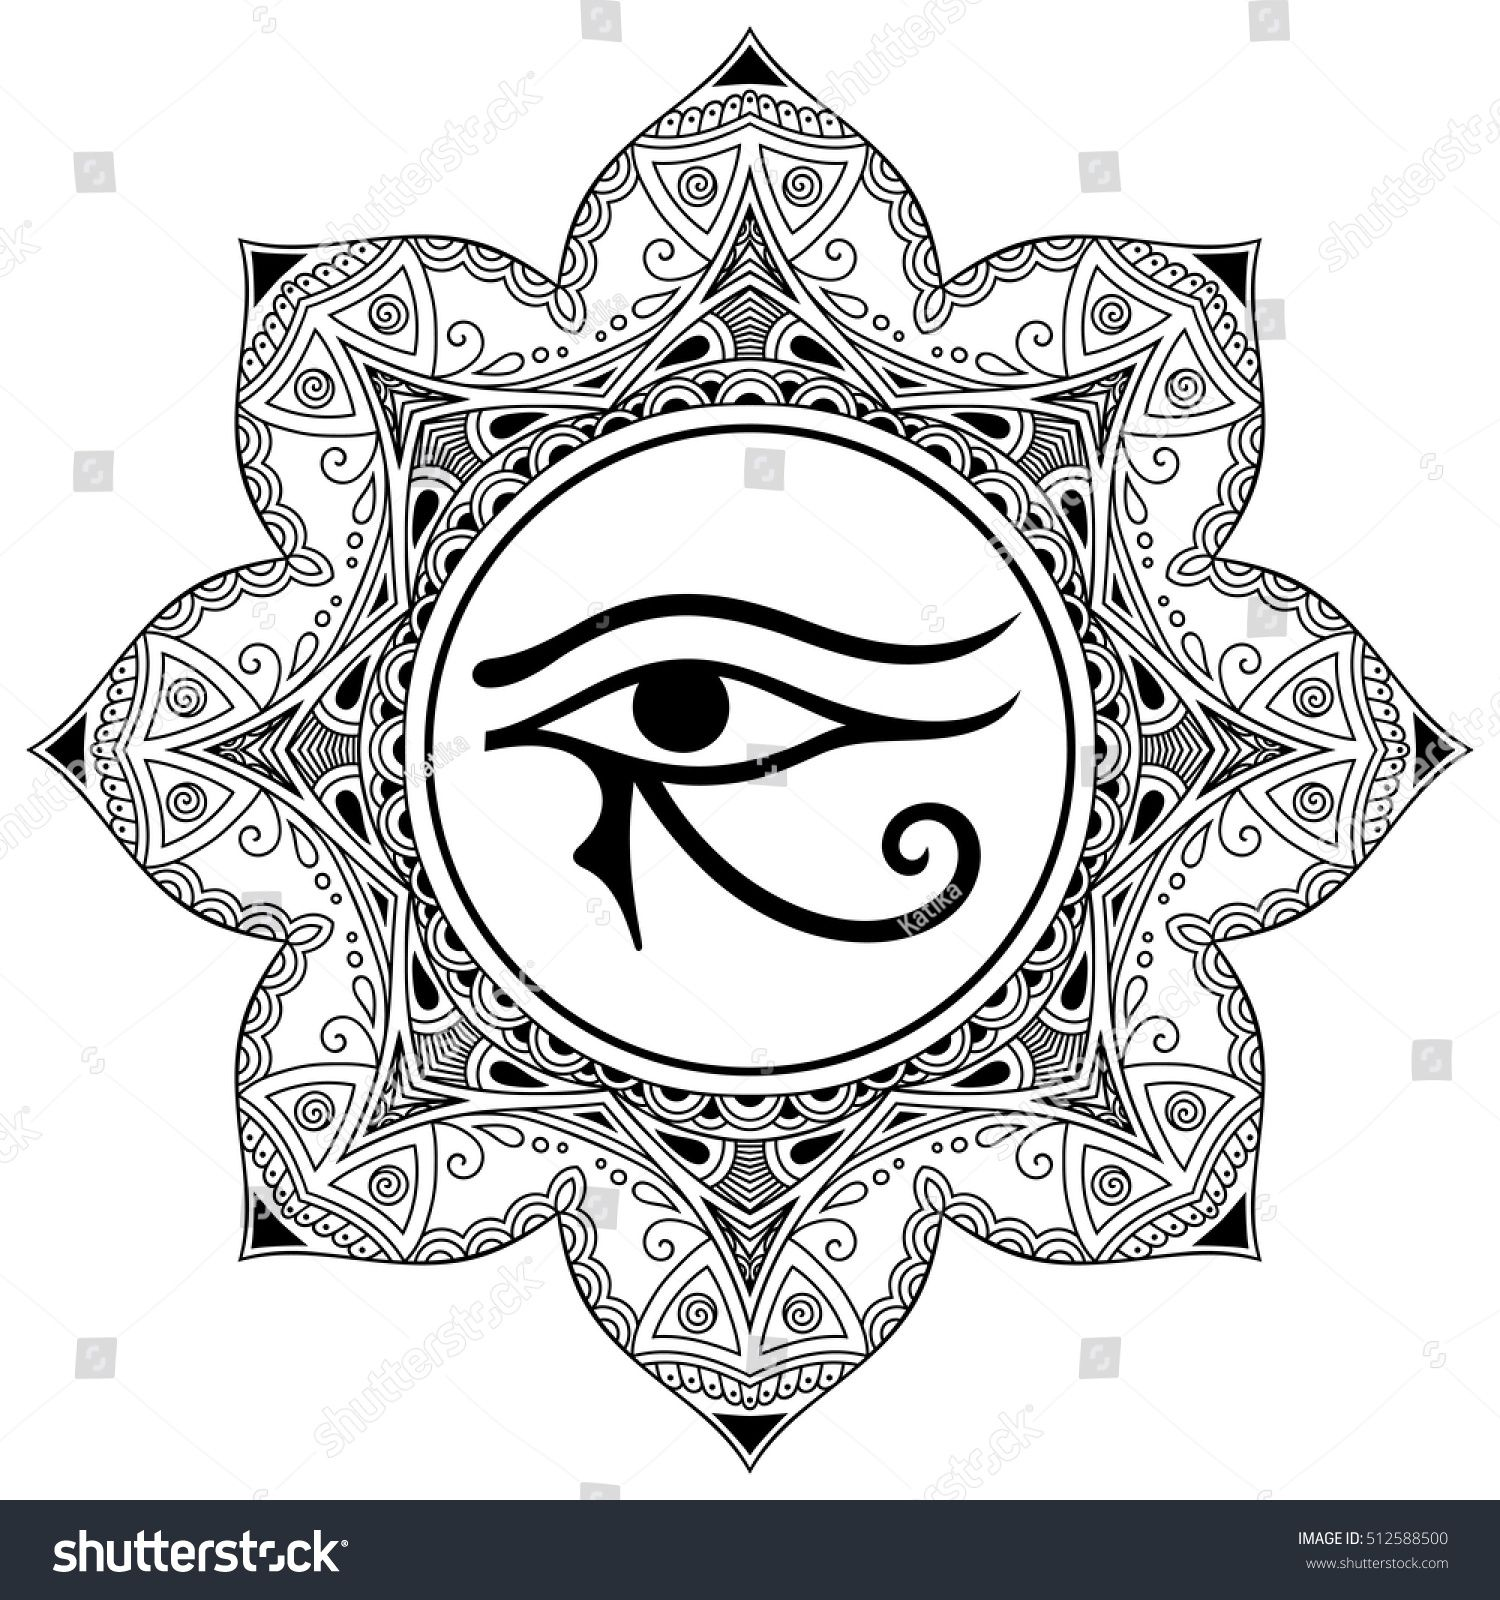 Image result for egyptian mandala Ancient symbols